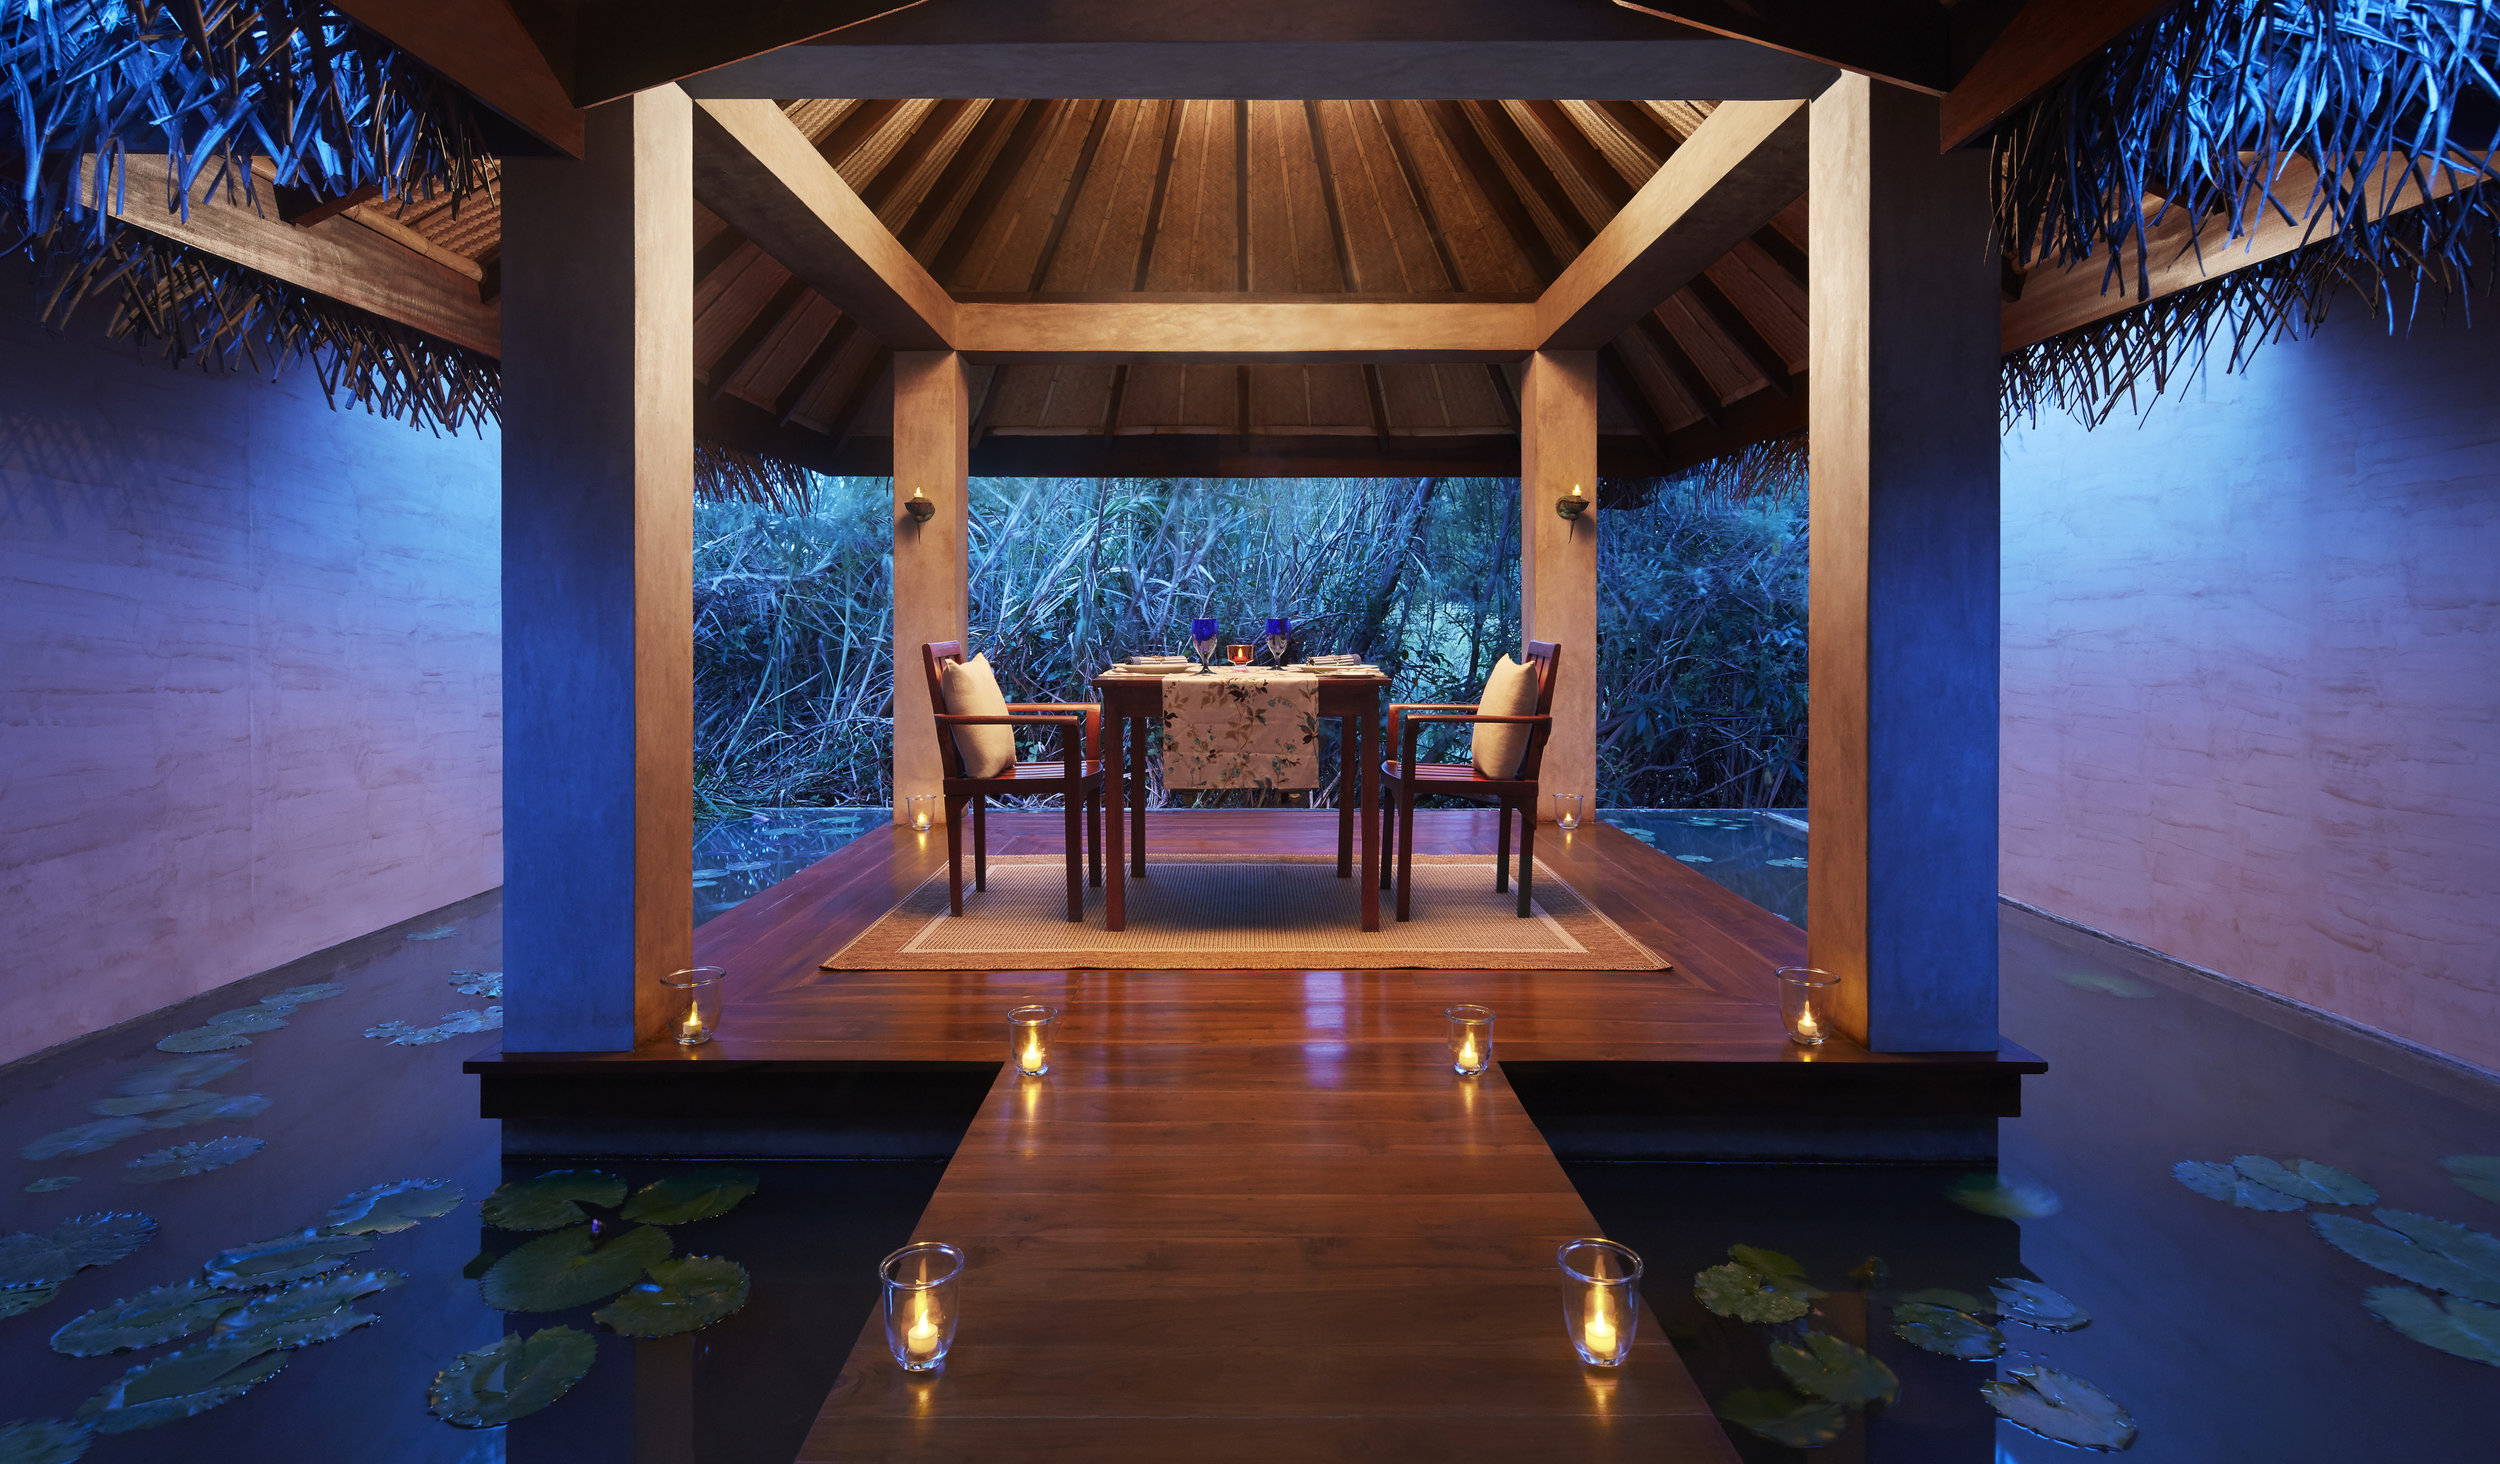 invite-to-paradise-sri-lanka-specialists-experts-travel-agent-tour-operator-jetwing-viluyana-hotel-cultural-triangle-spa-dining.jpg